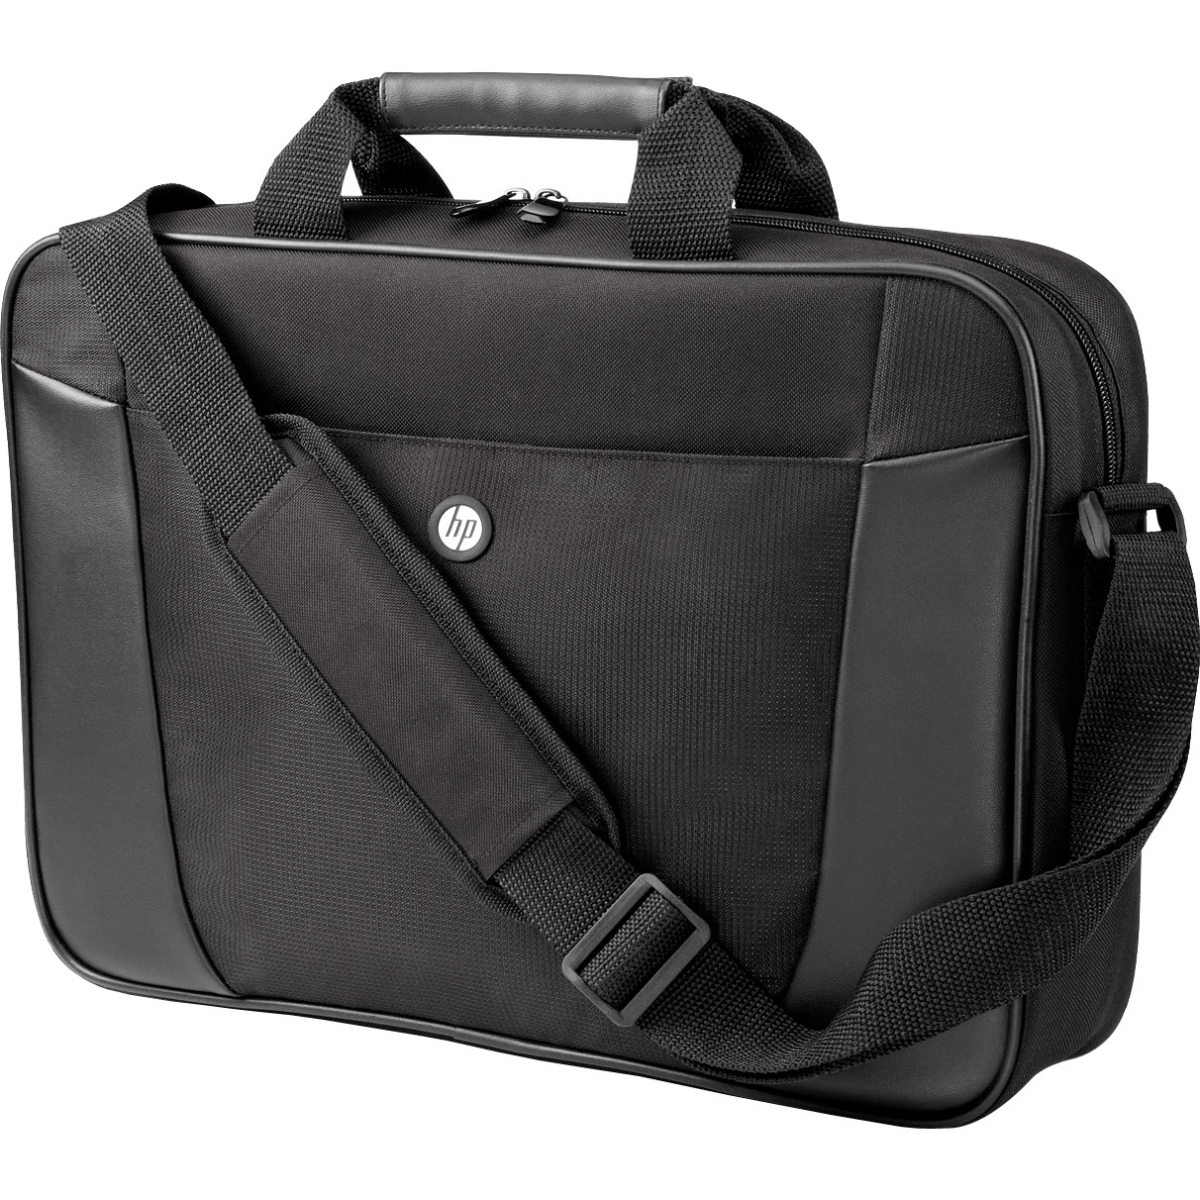 Essential Top Load Case - Notebook carrying case - 15.6 inch - for EliteBook 1040 G3 745 G3; Pro Tablet 610 G1; ProBook 11 G2 45X G3; Spectre Pro x360 G2